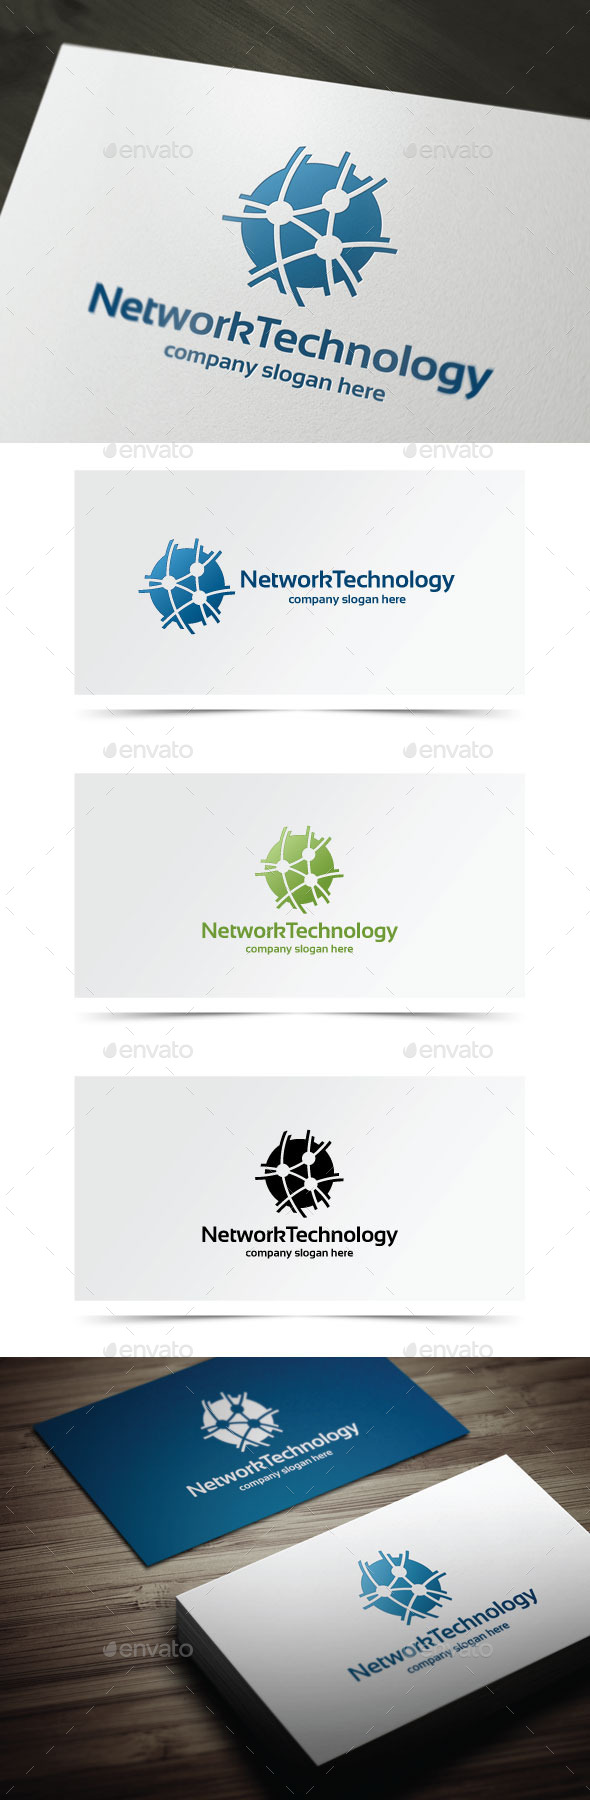 GraphicRiver Network Technology 9941619